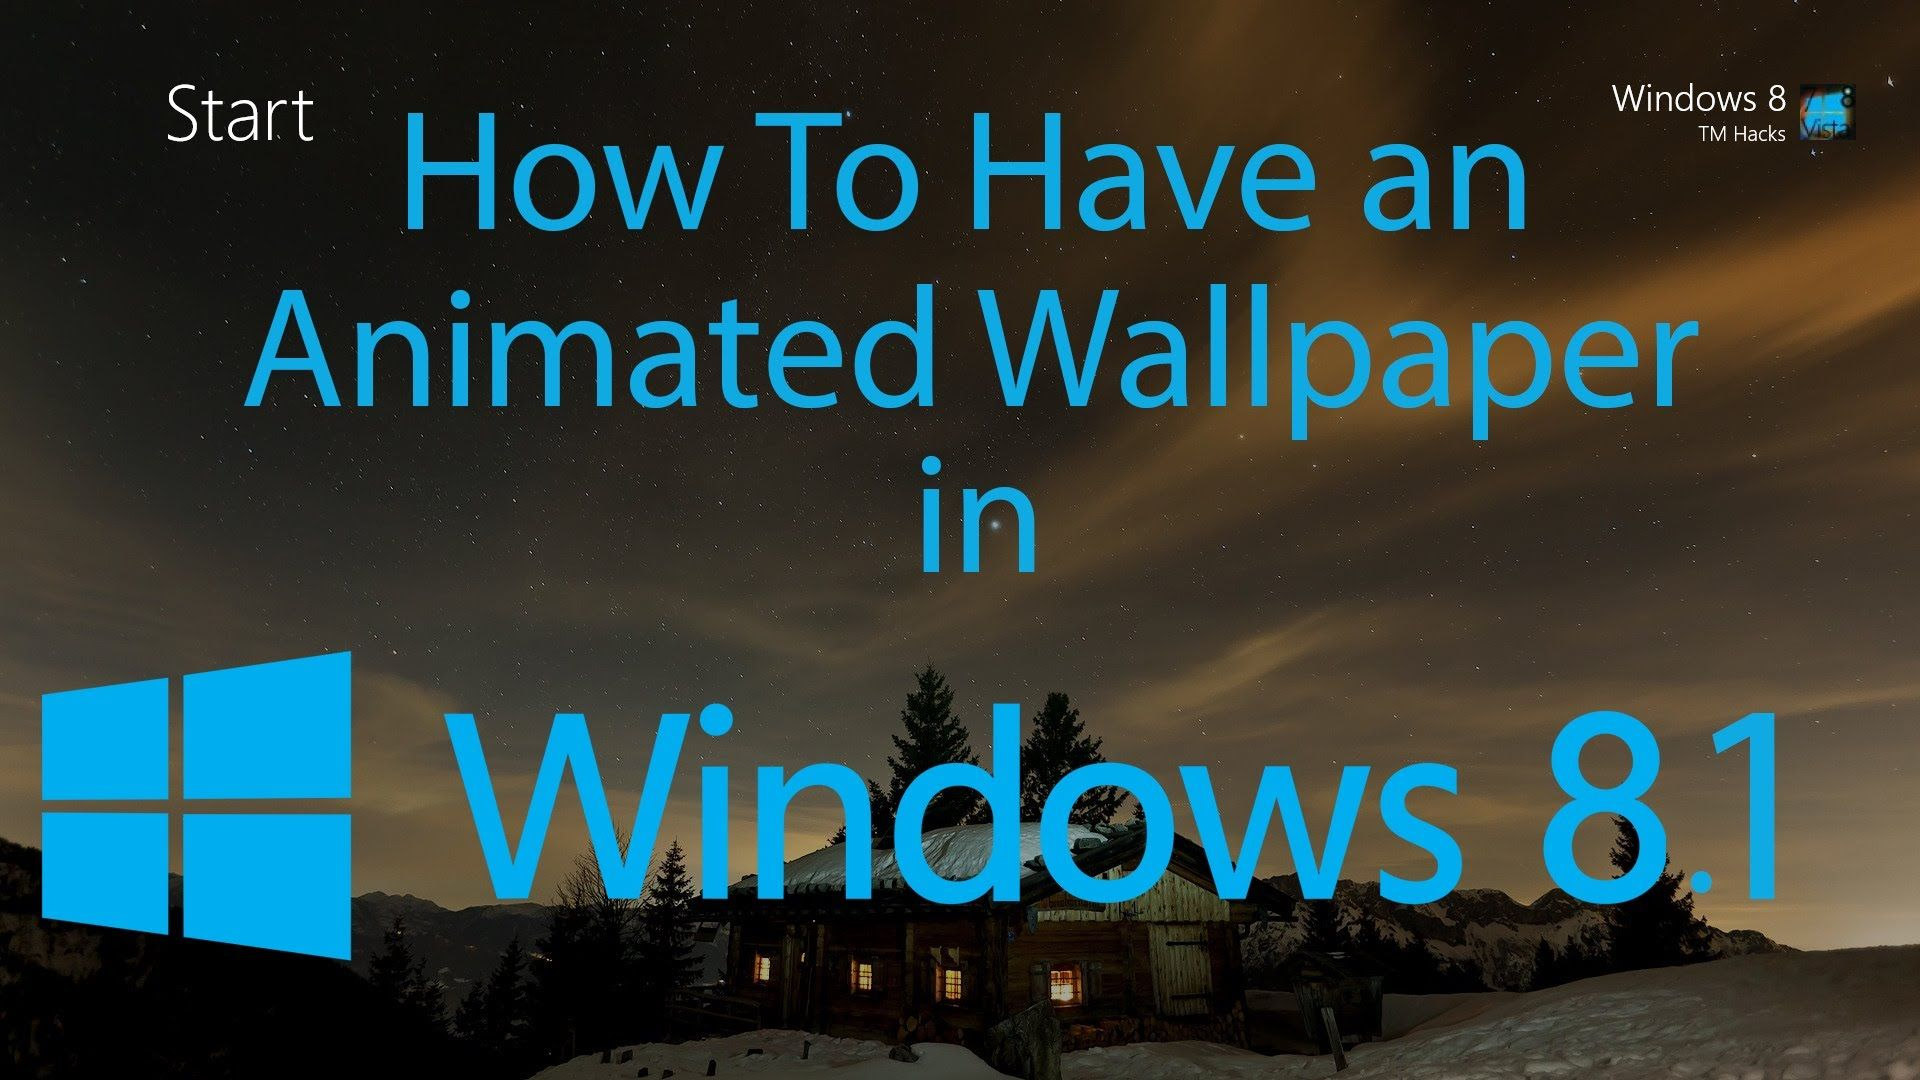 Moving Wallpaper Windows 10 47 Android Compatible